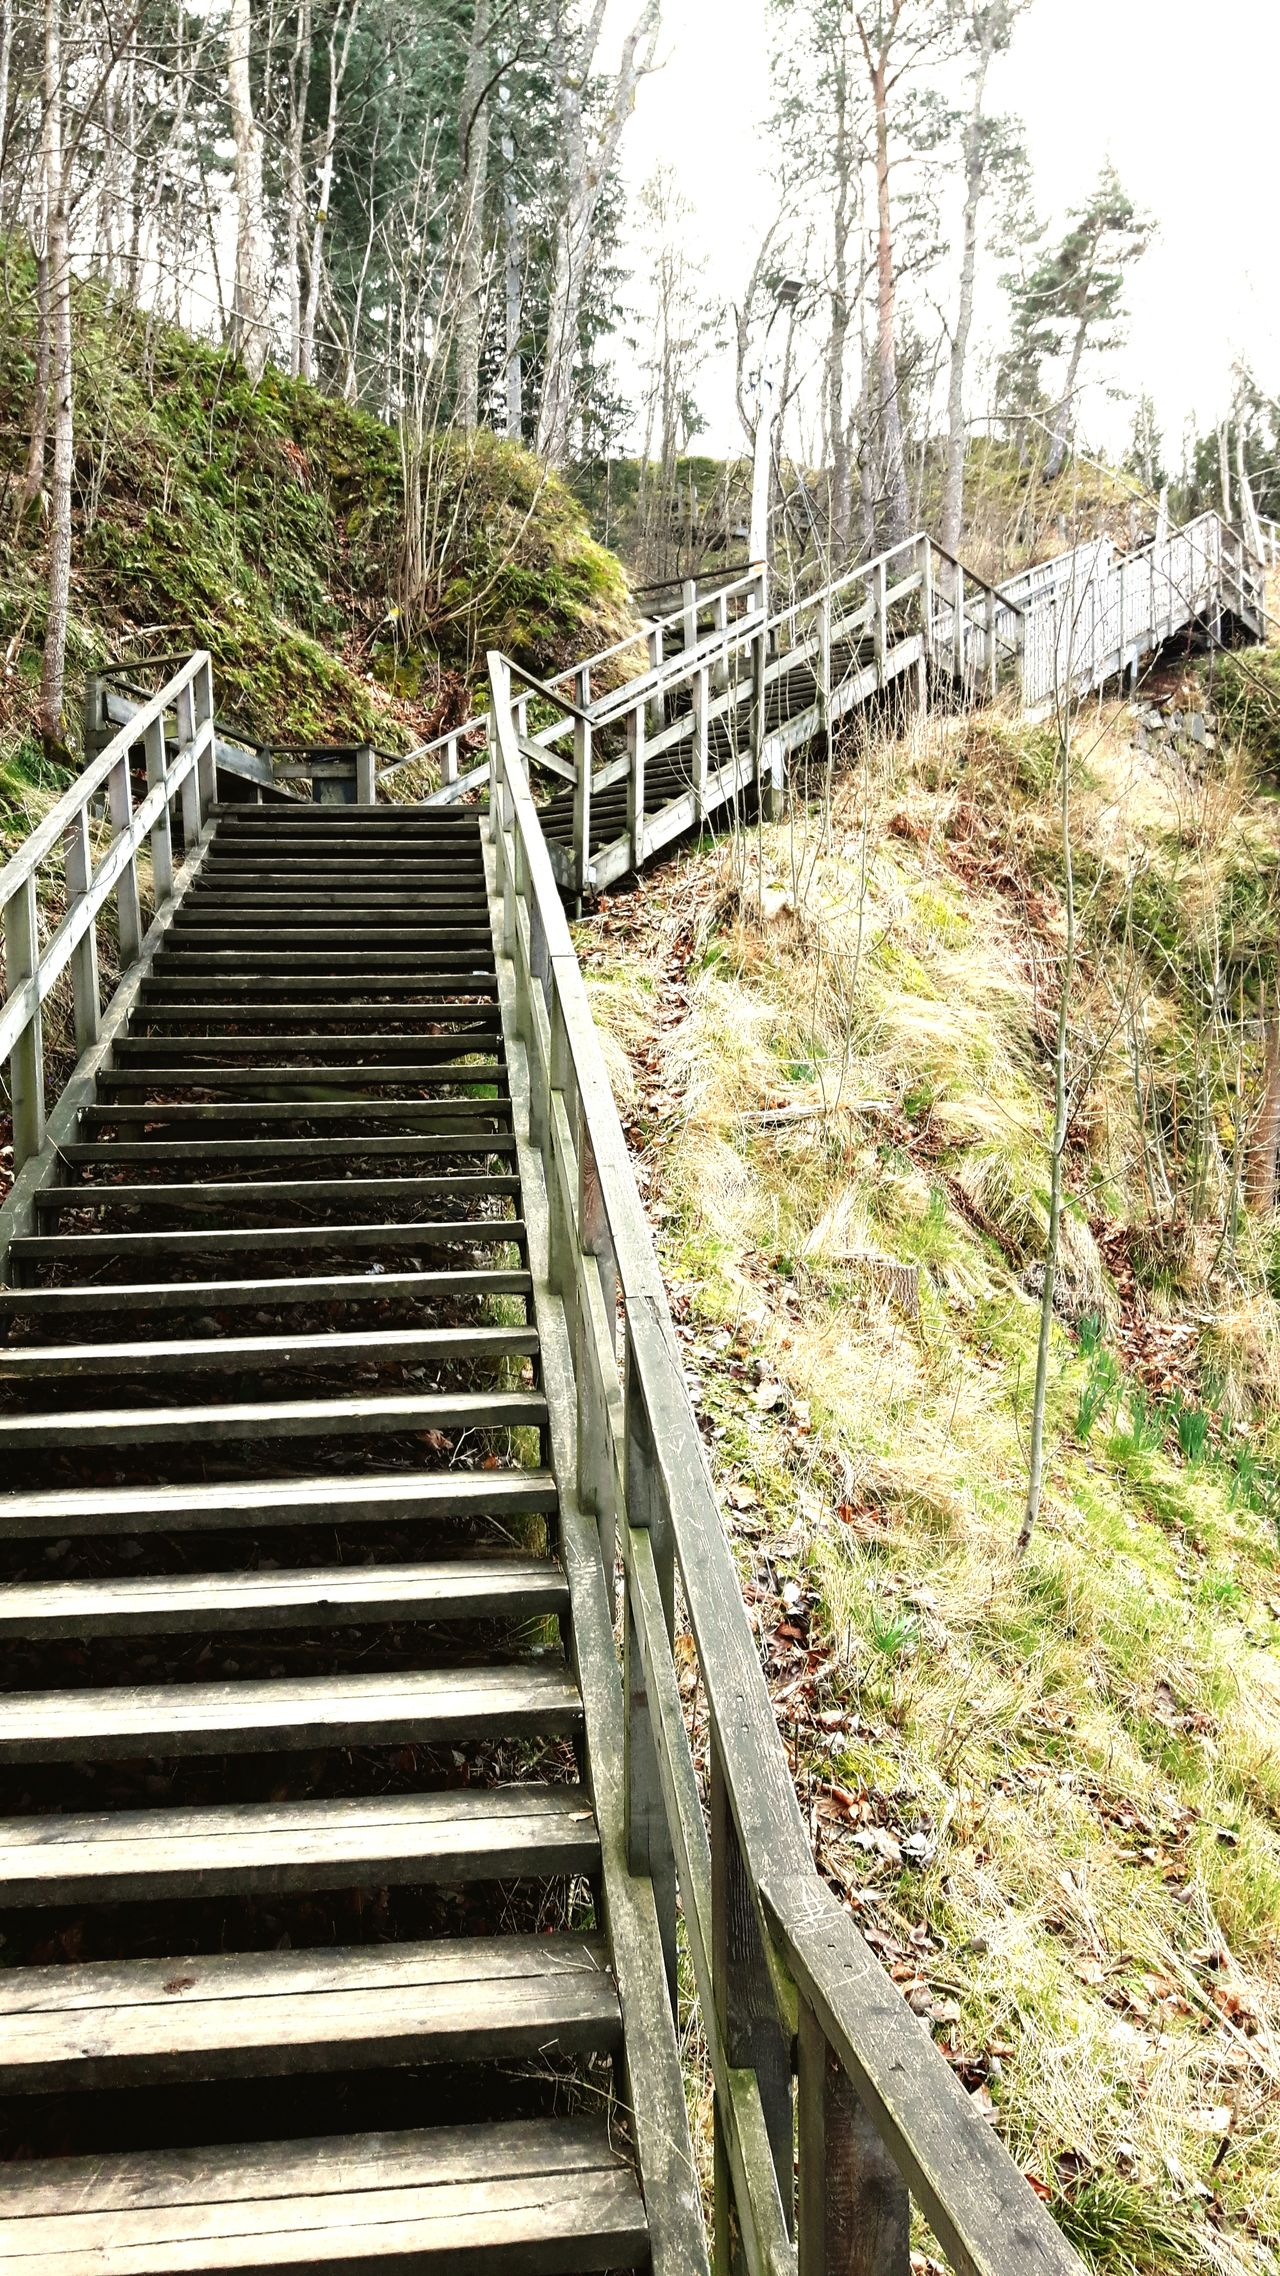 The Way Forward No People Outdoors Footbridge Gränna Gränna, Sweden Grännaberget Travel Destinations Nature Treppen Stairs Escaleras Treppen Stairway Stairway To Heaven